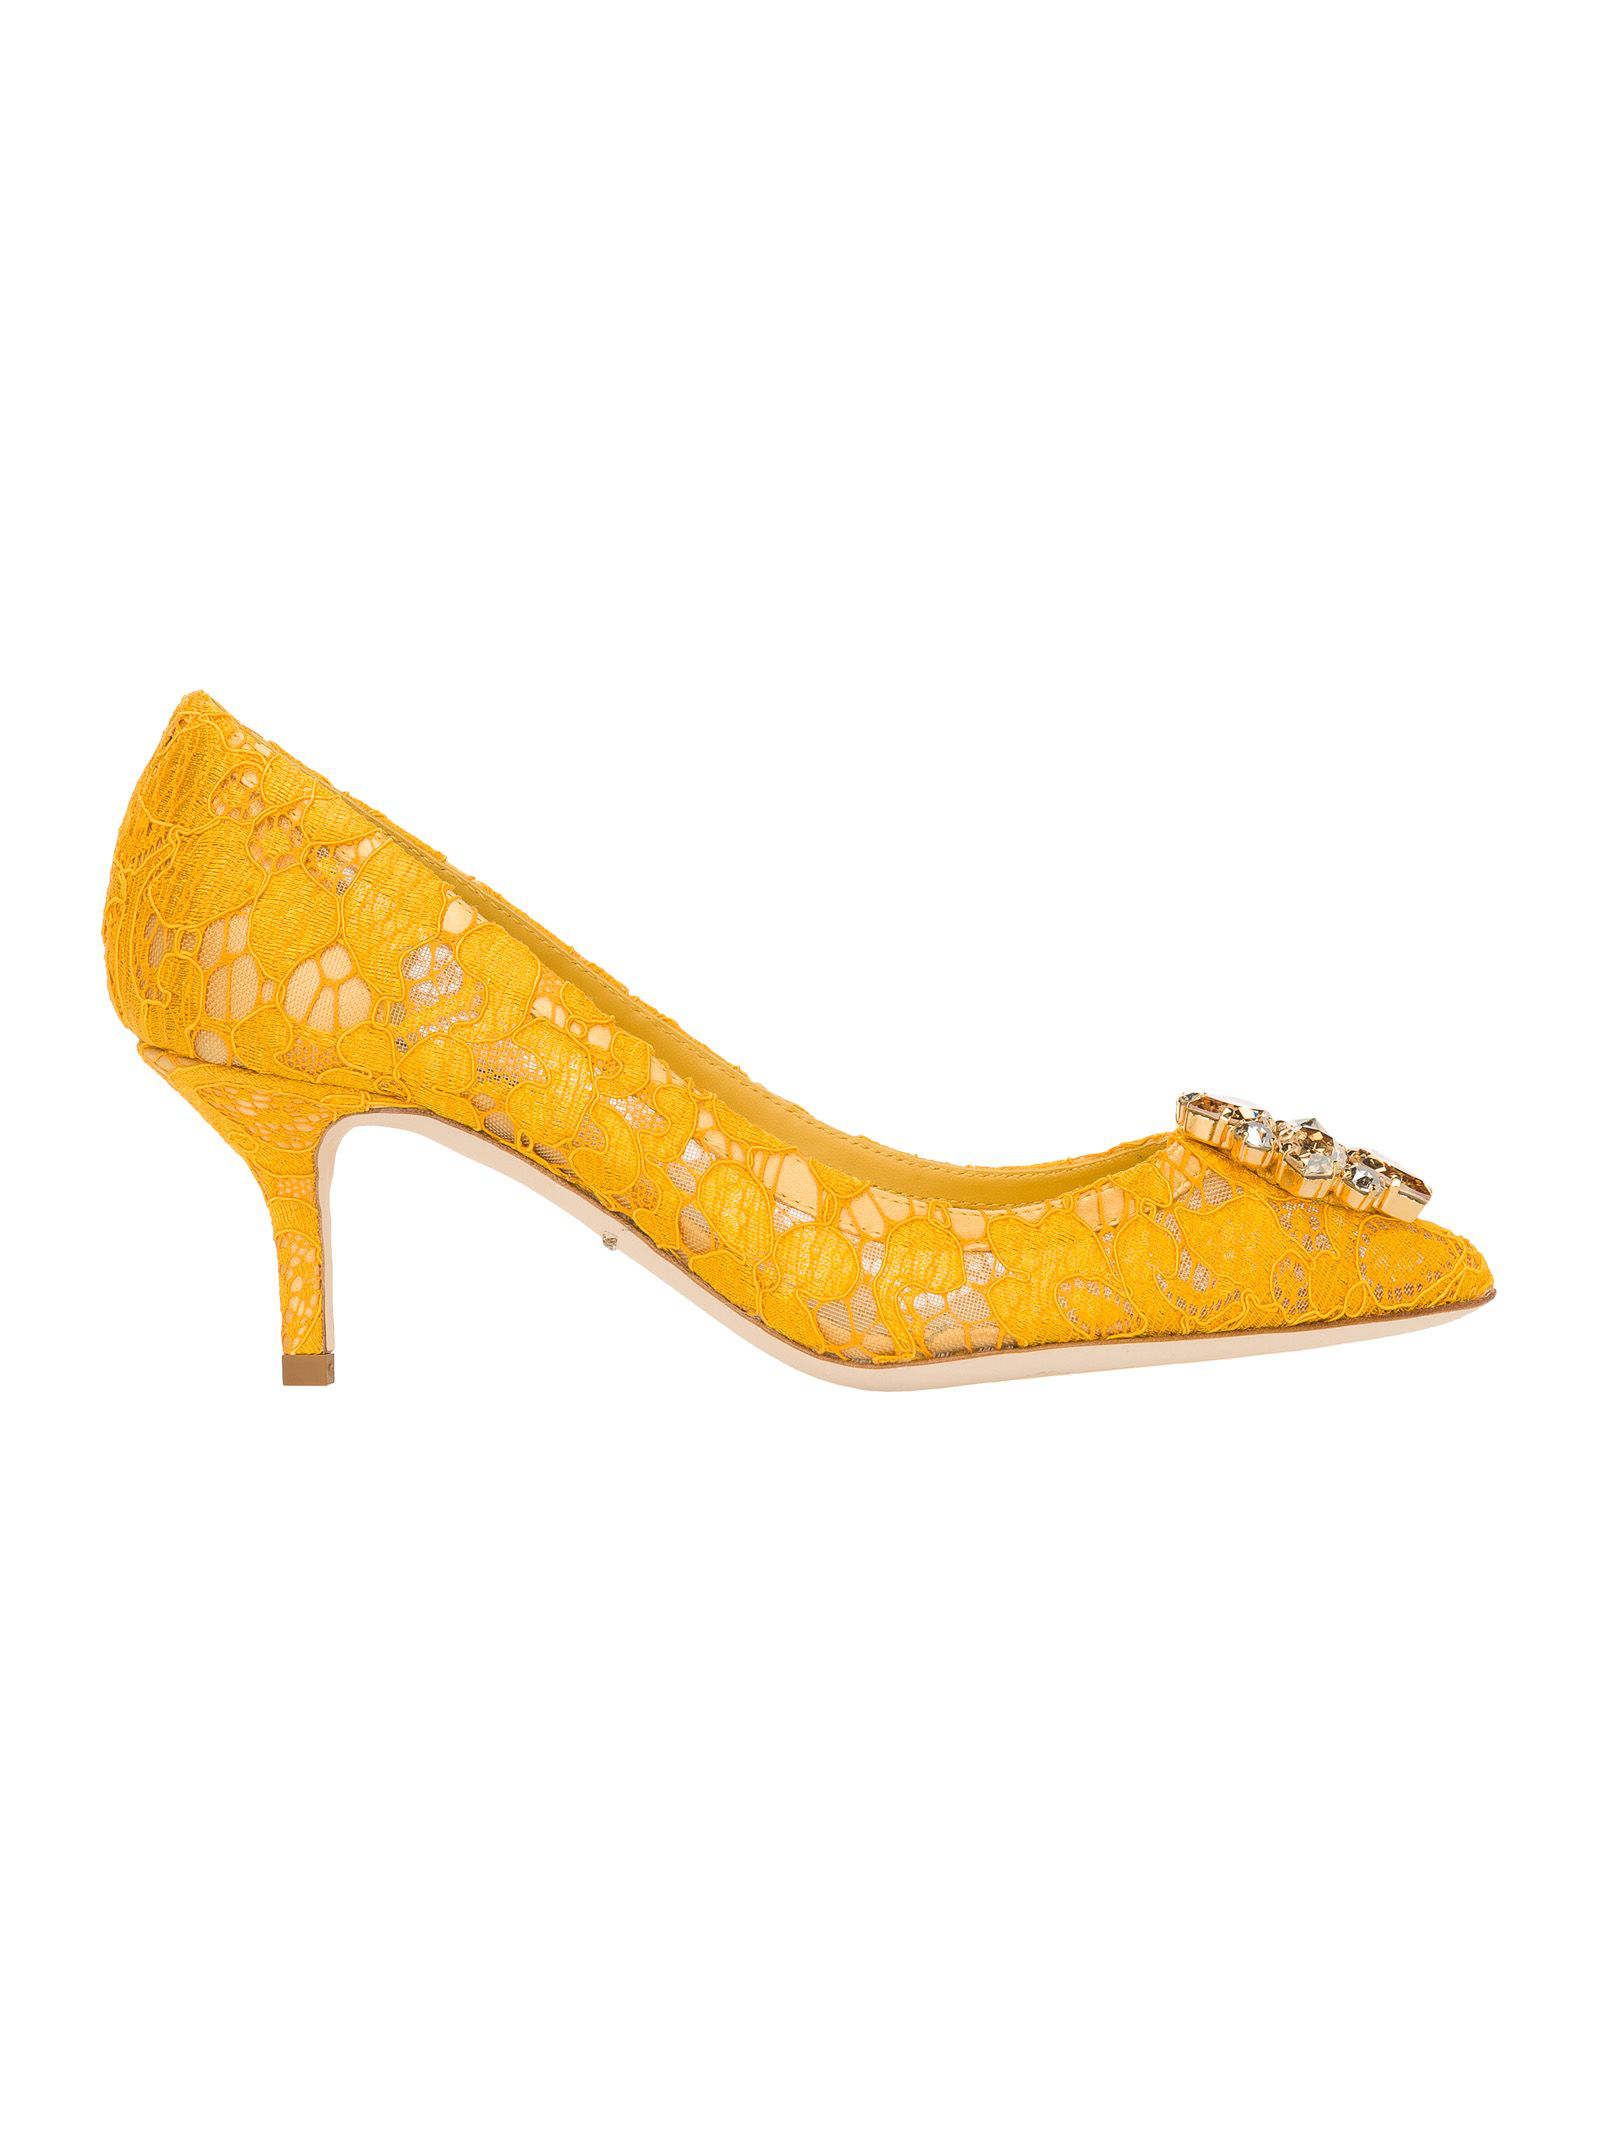 1c20369e79ed Dolce   Gabbana Belluci Crystal-Embellished Lace Pumps In Yellow ...